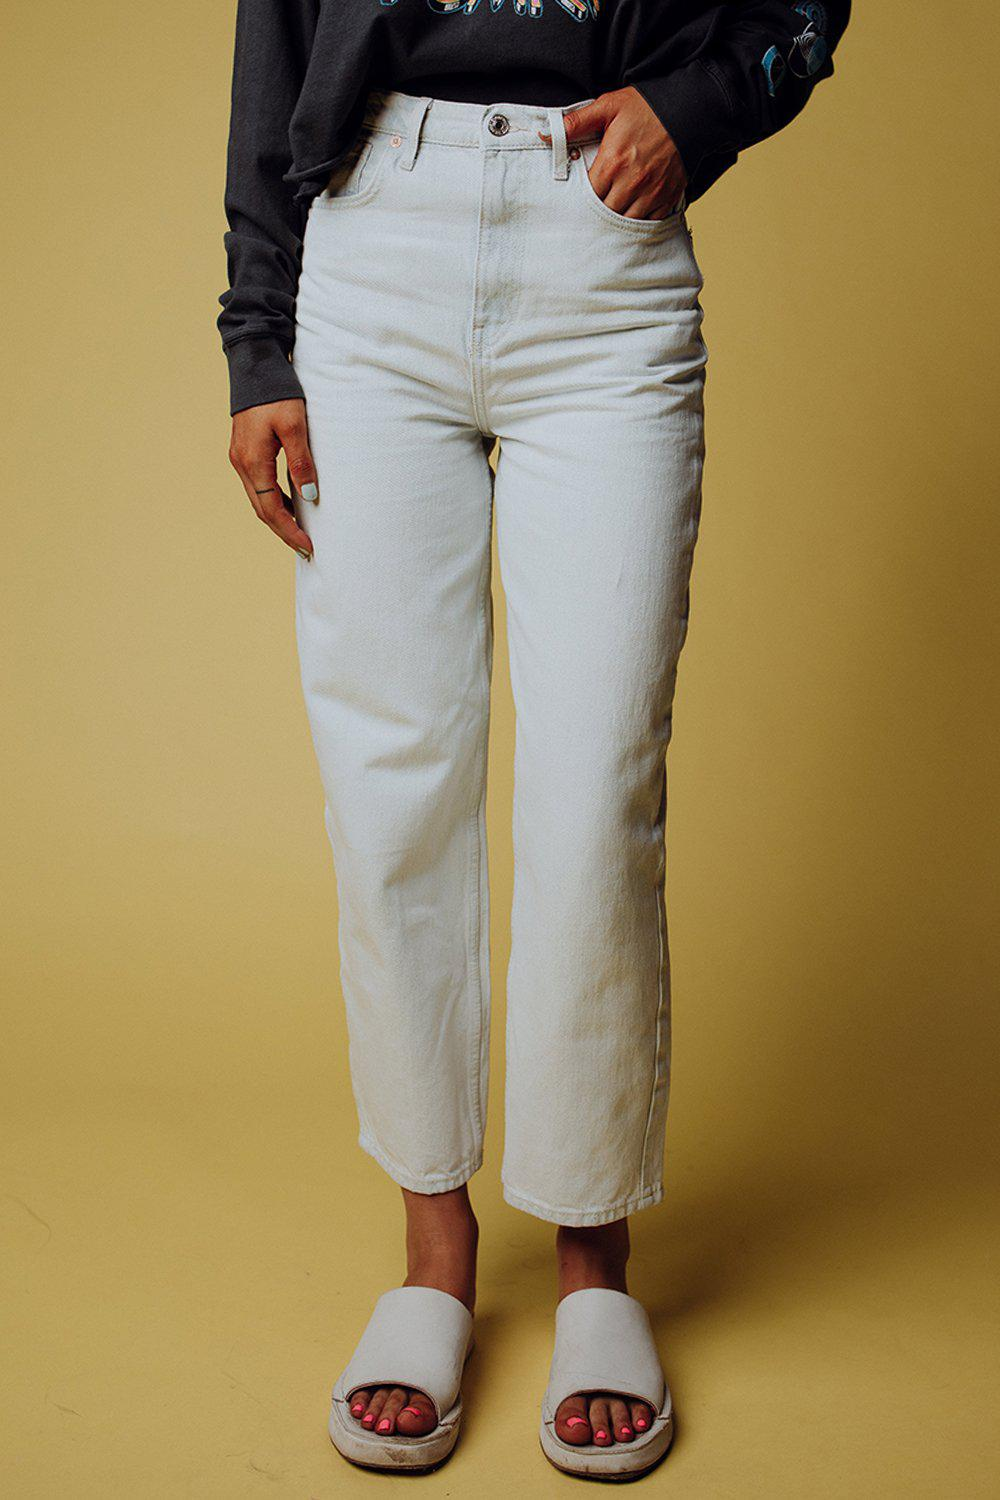 best_seller, Free People Frank Dad Jean in Icy Blue - FINAL SALE, Bottom, women's clothing, dresses, skirts, coats, jackets, shoes, boots, tops, tee shirts, jeans, free people, levi's, rollas, jumpsuits, bottoms, tops, sweaters, pullovers, pants, shorts, sweats,.